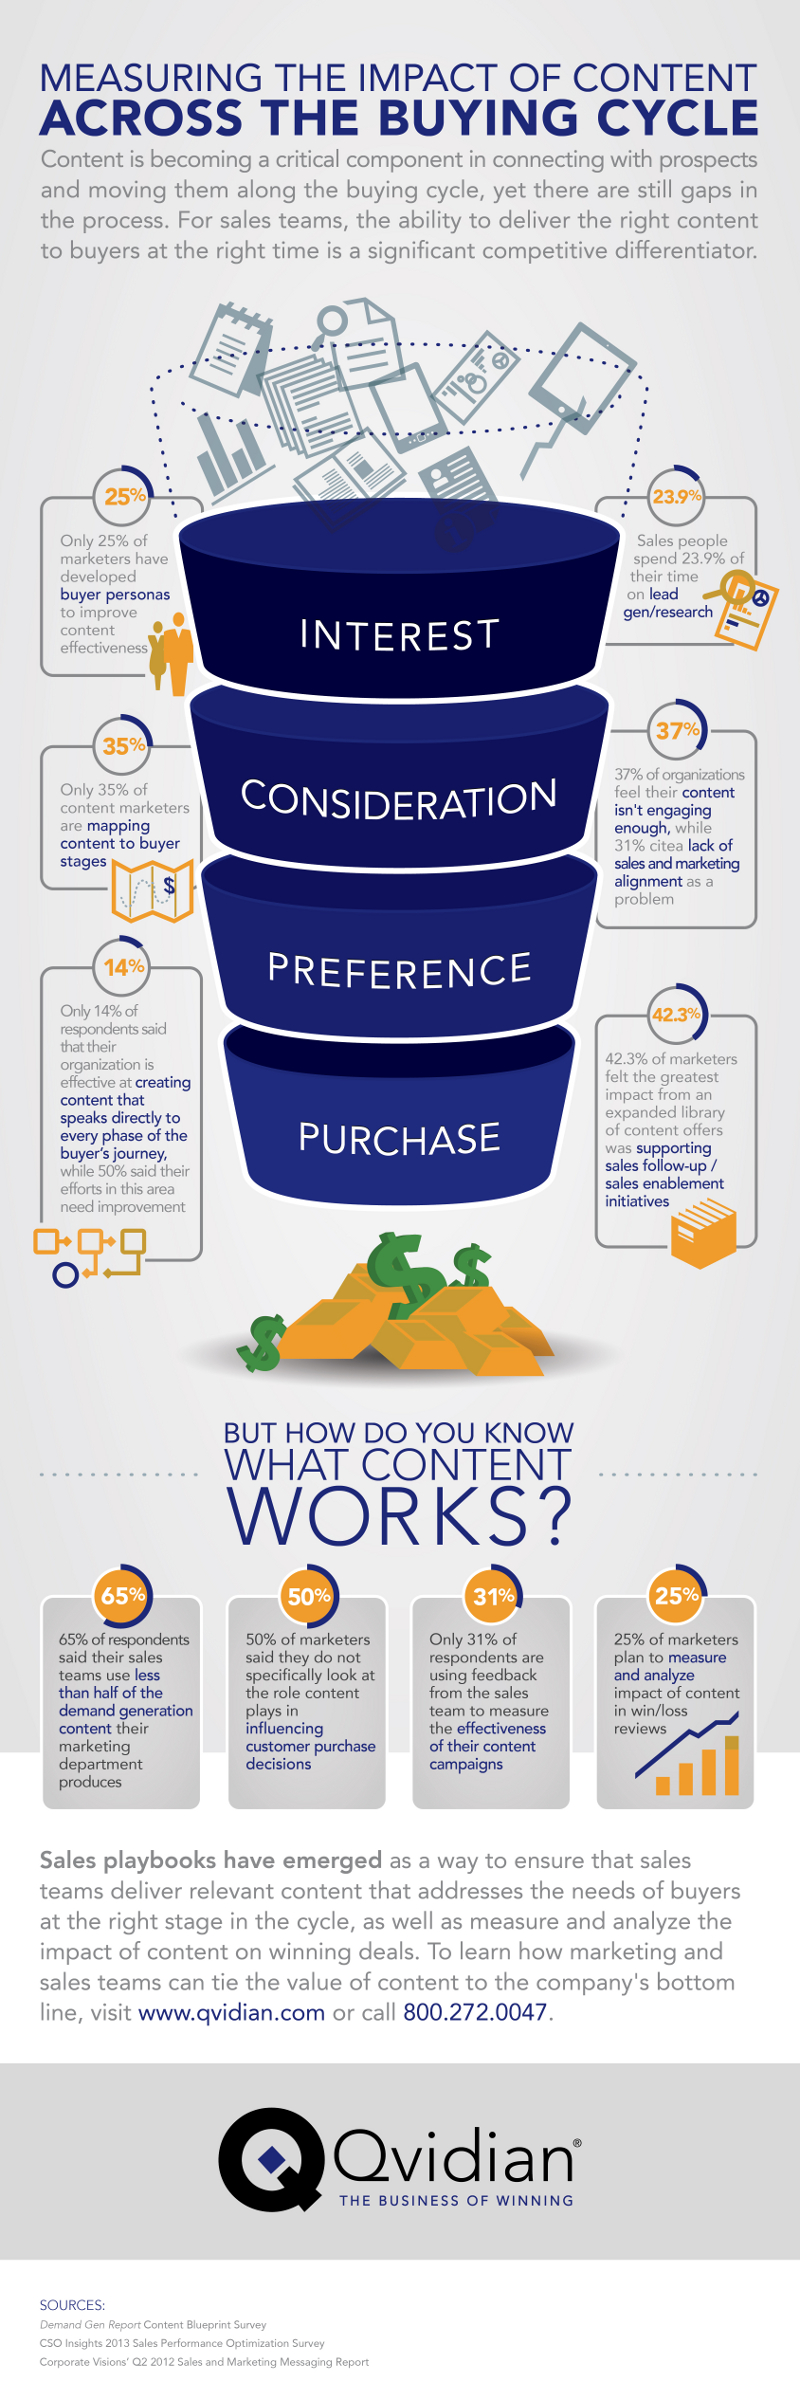 10 Brilliant Ways Content Impacts the Consumer Purchase Funnel